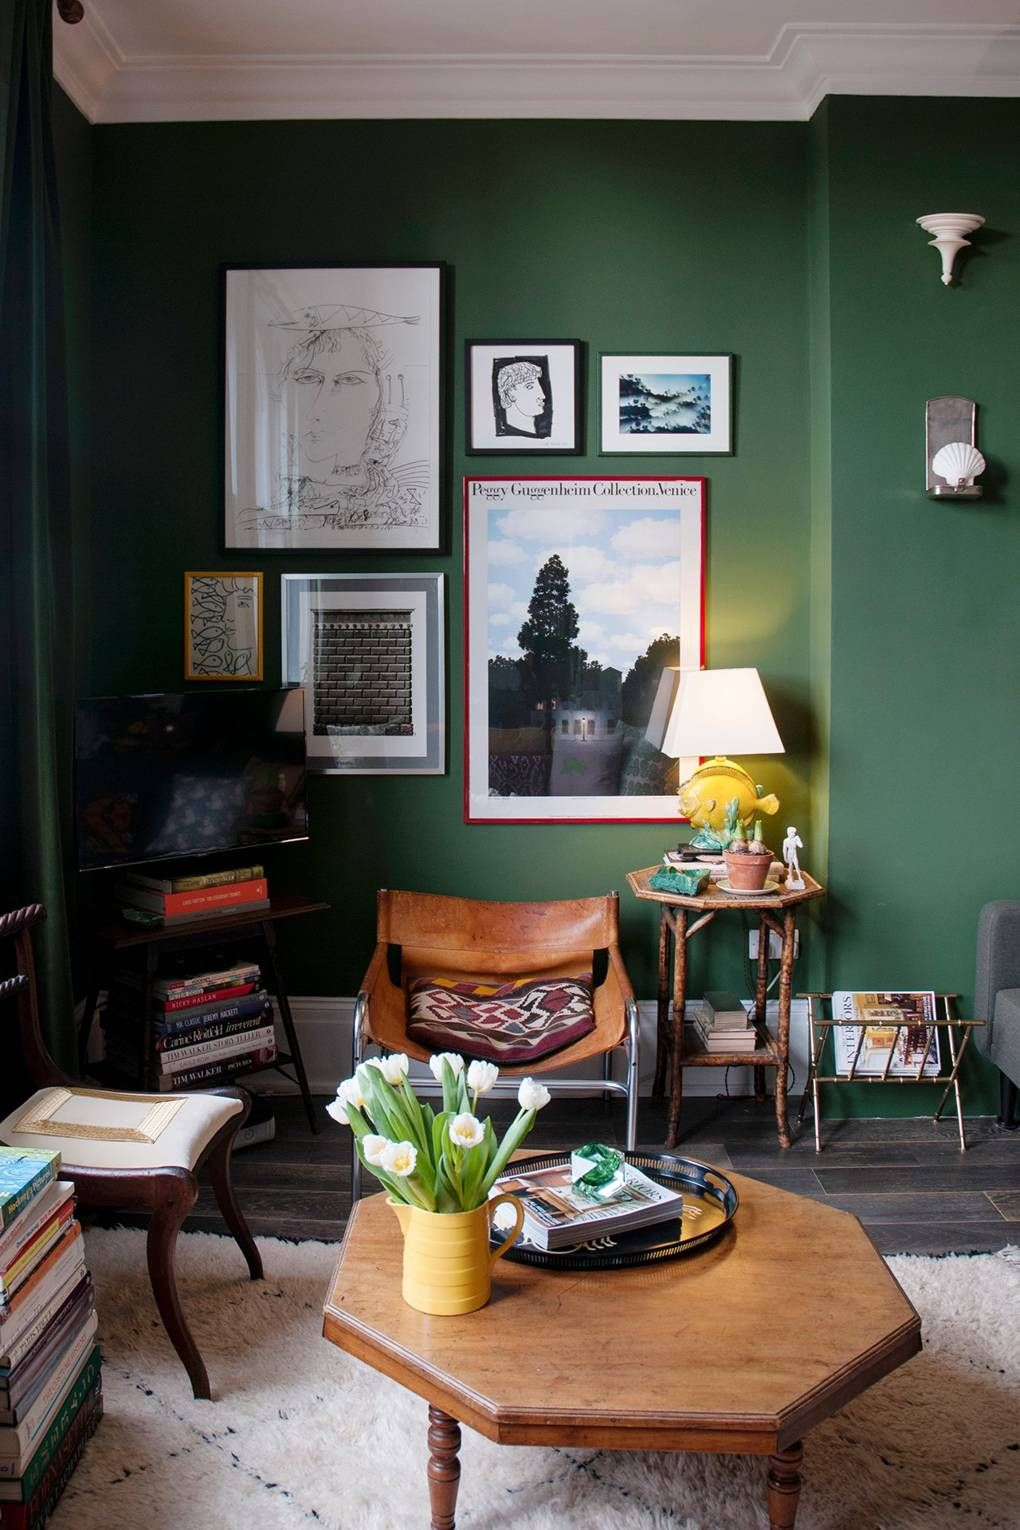 95 Ways To Decorate A Flat Living Room Green Dark Green Living Room Green Rooms